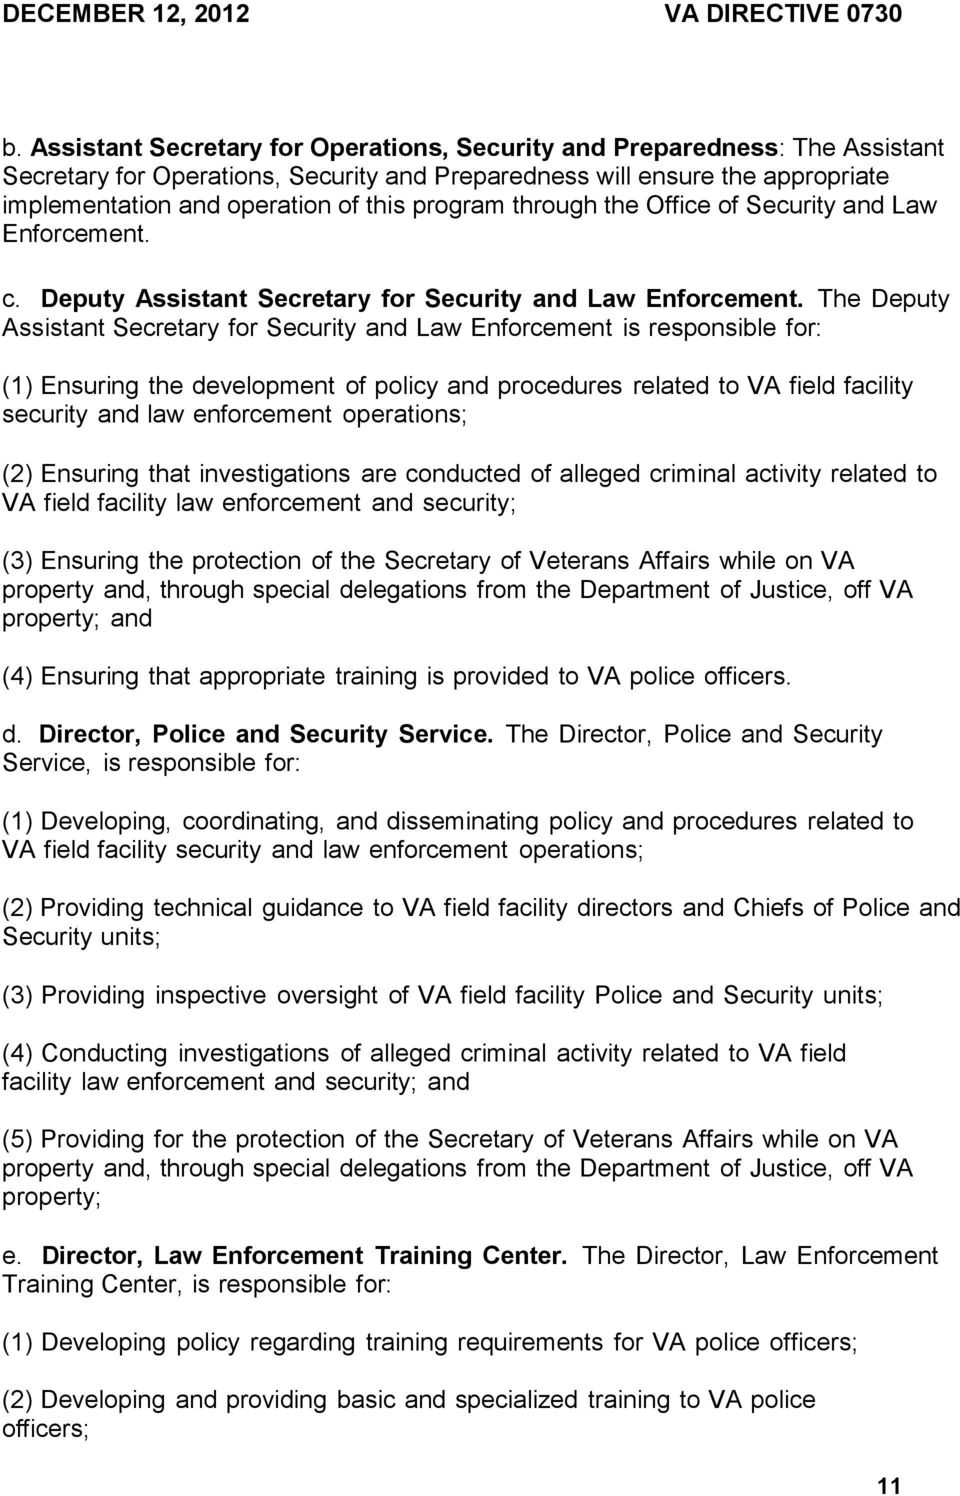 program through the Office of Security and Law Enforcement. c. Deputy Assistant Secretary for Security and Law Enforcement.